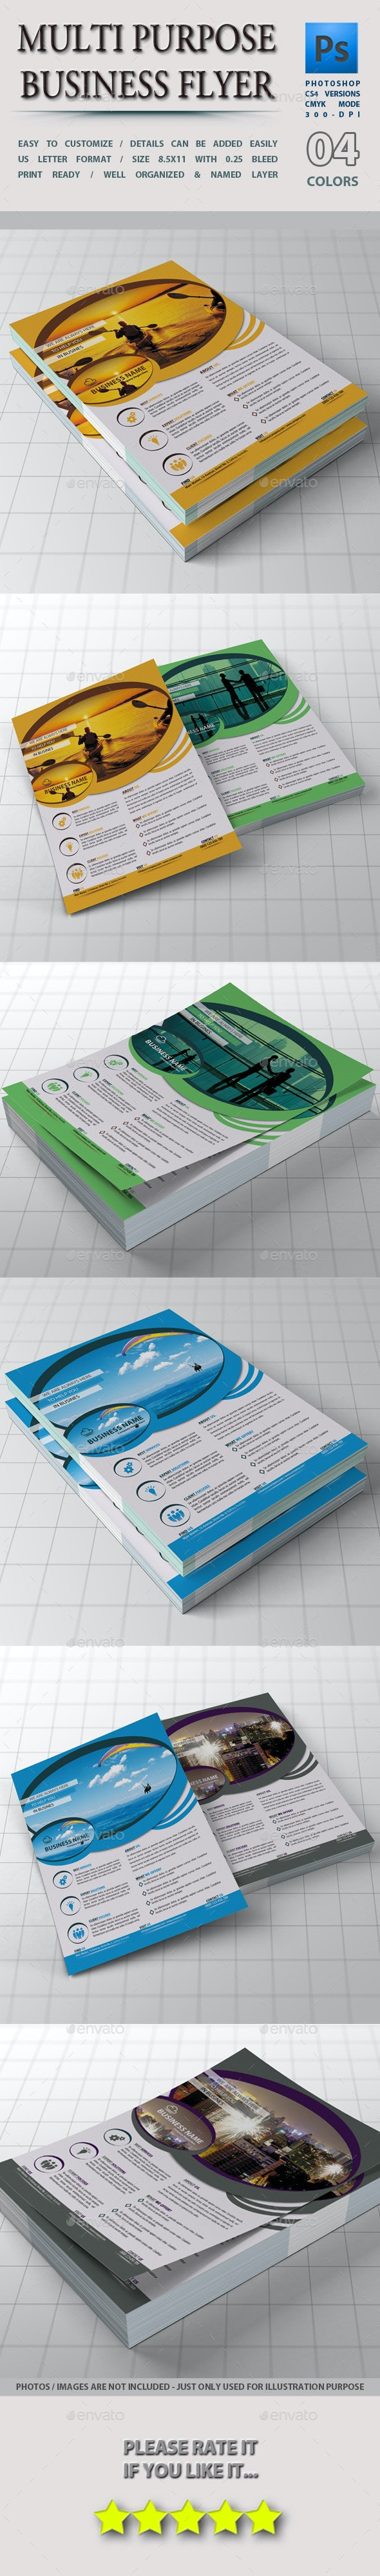 Multi-Purpose Business Flyer - Corporate Flyers